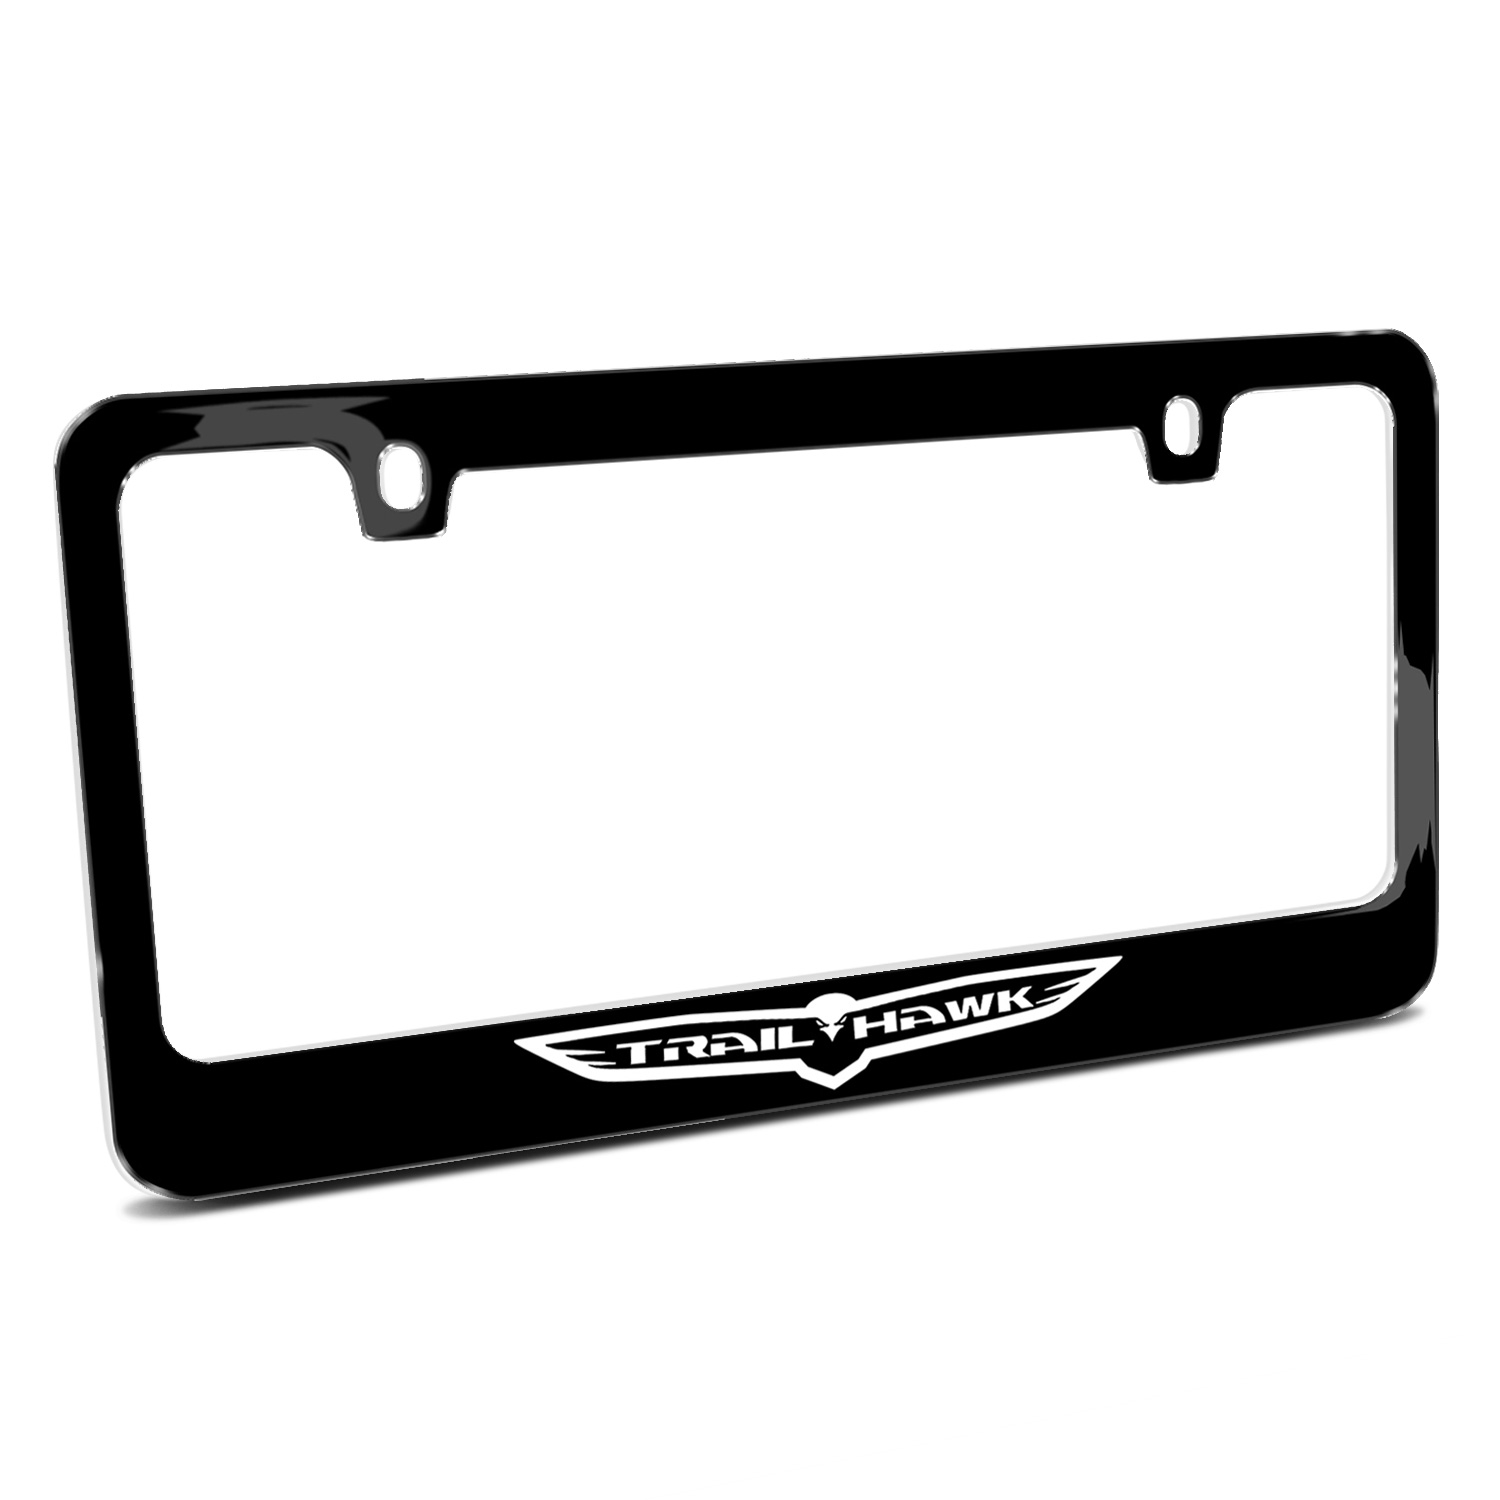 Jeep Trailhawk Outline Black Metal License Plate Frame